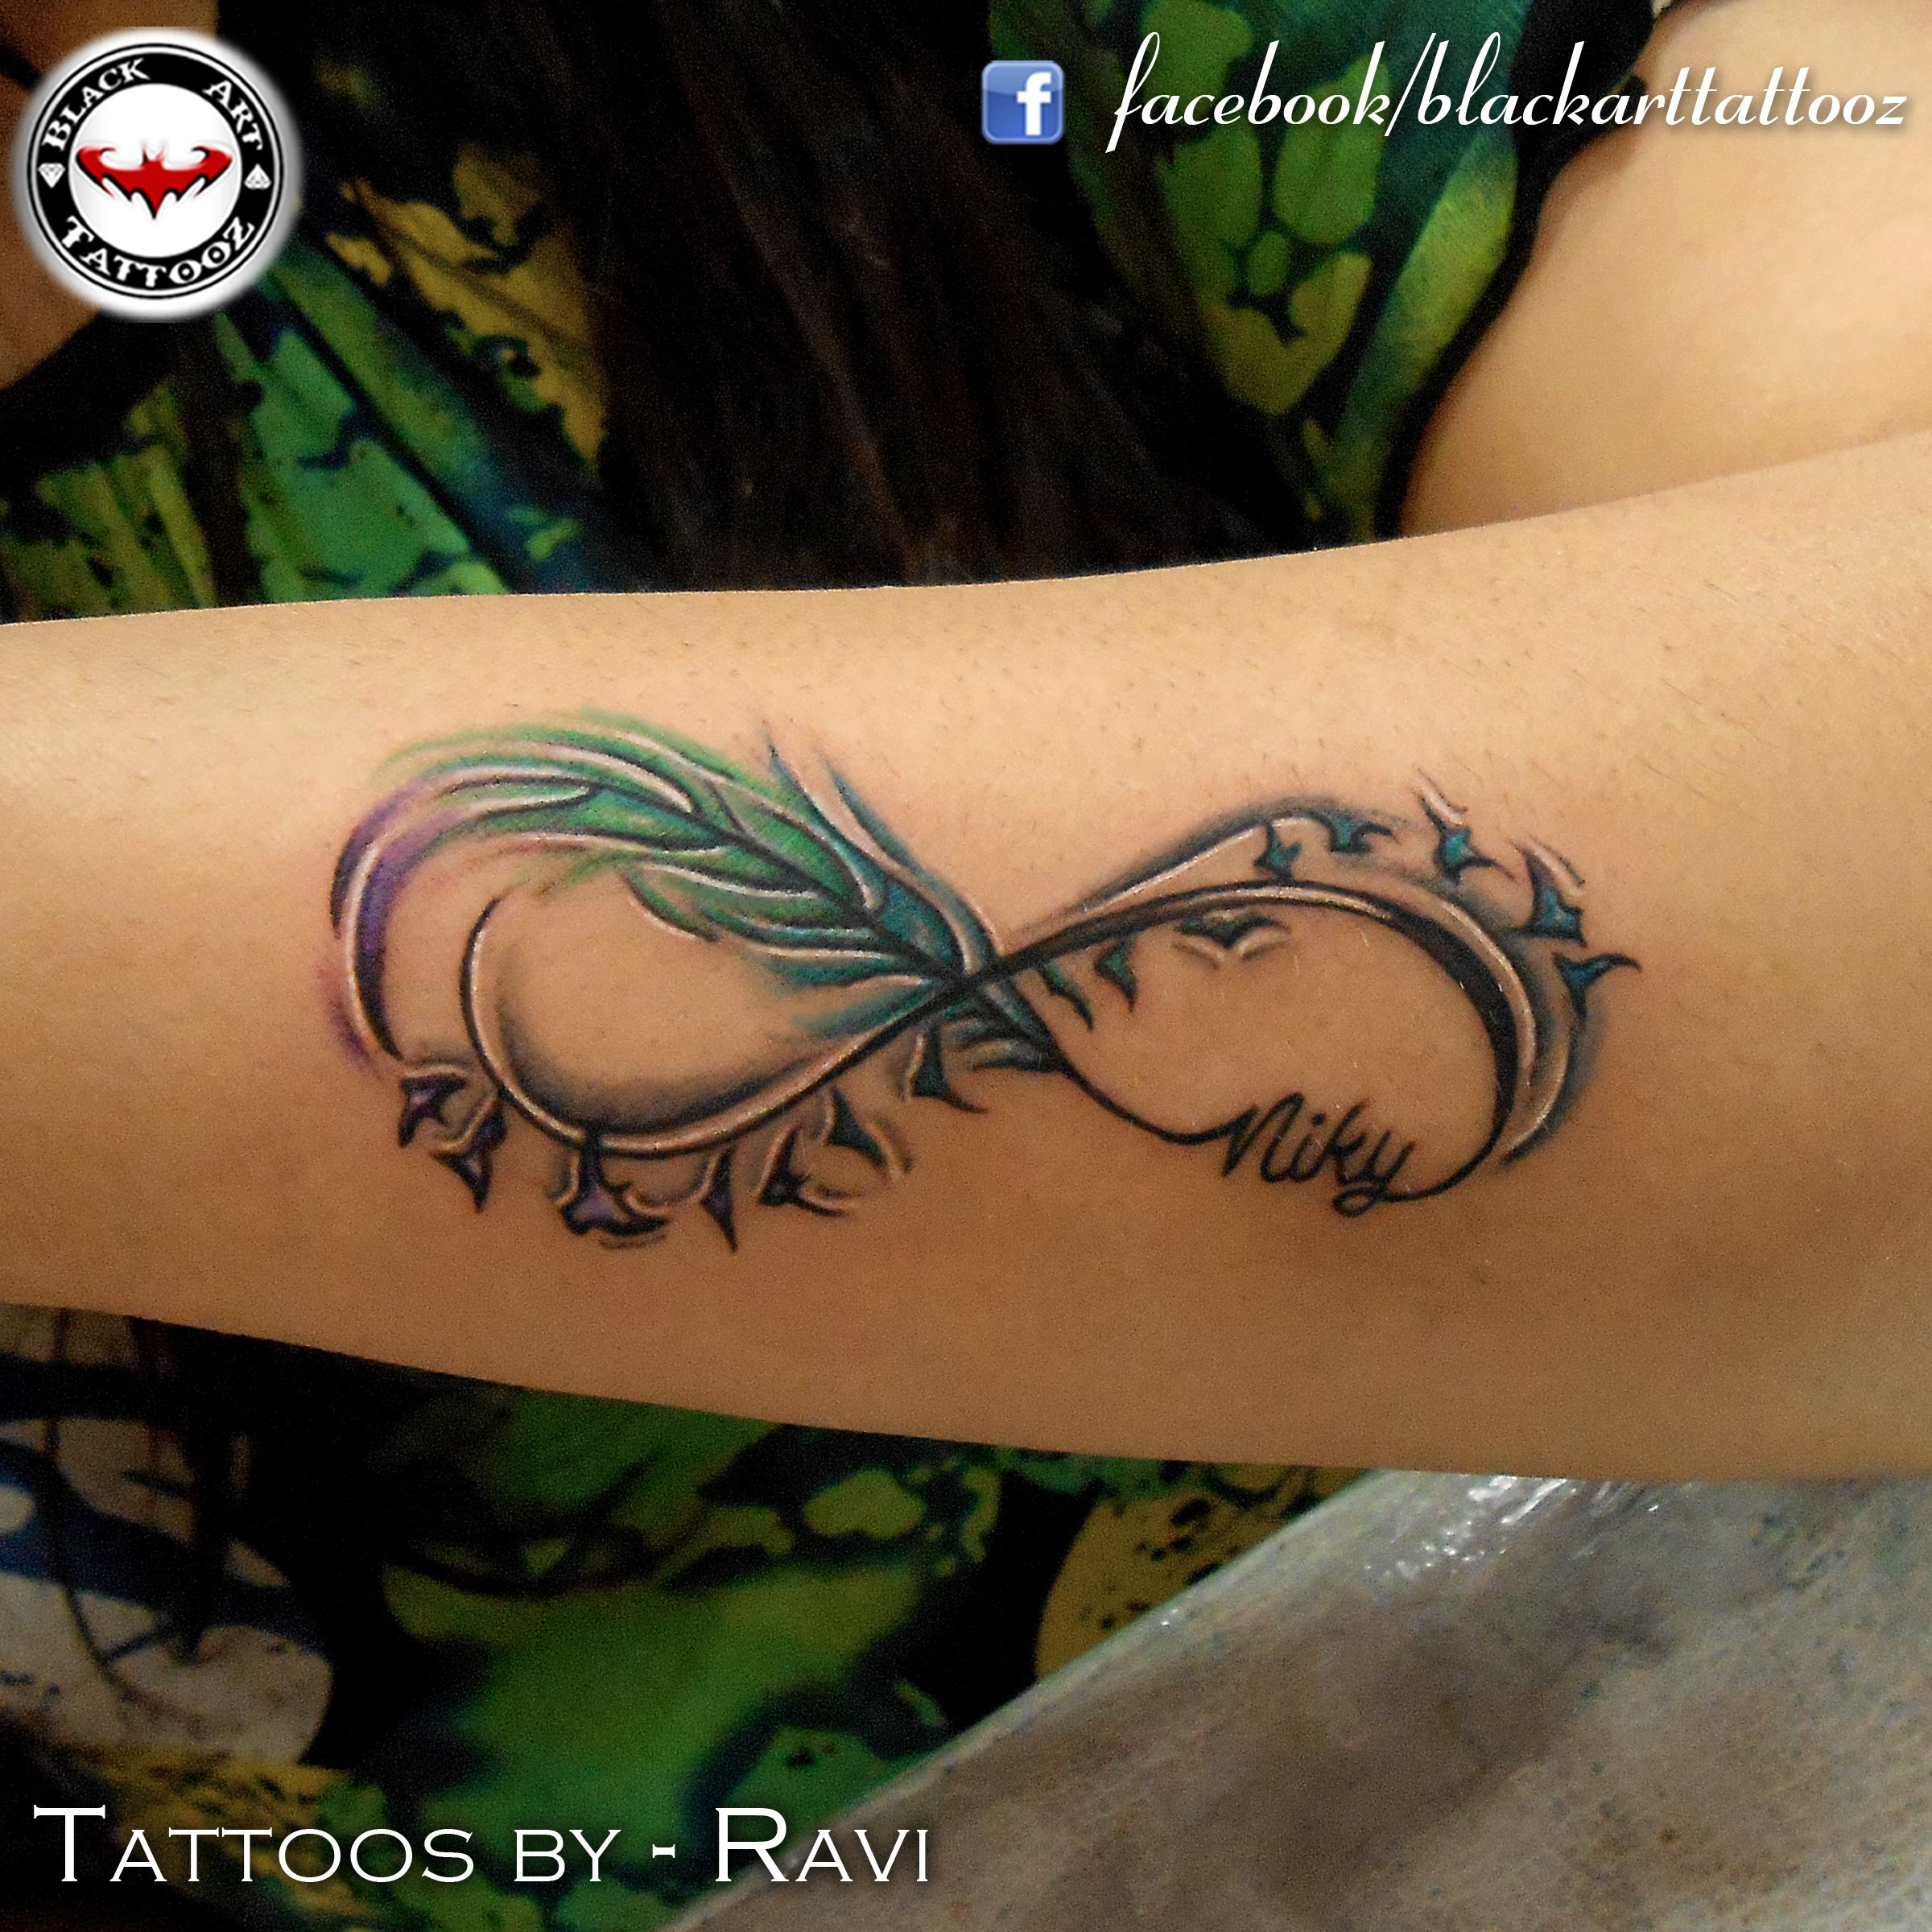 21 Infinity Sign Tattoos You Won T Regret Getting: Hakuna Matata Instead Of The Birds!